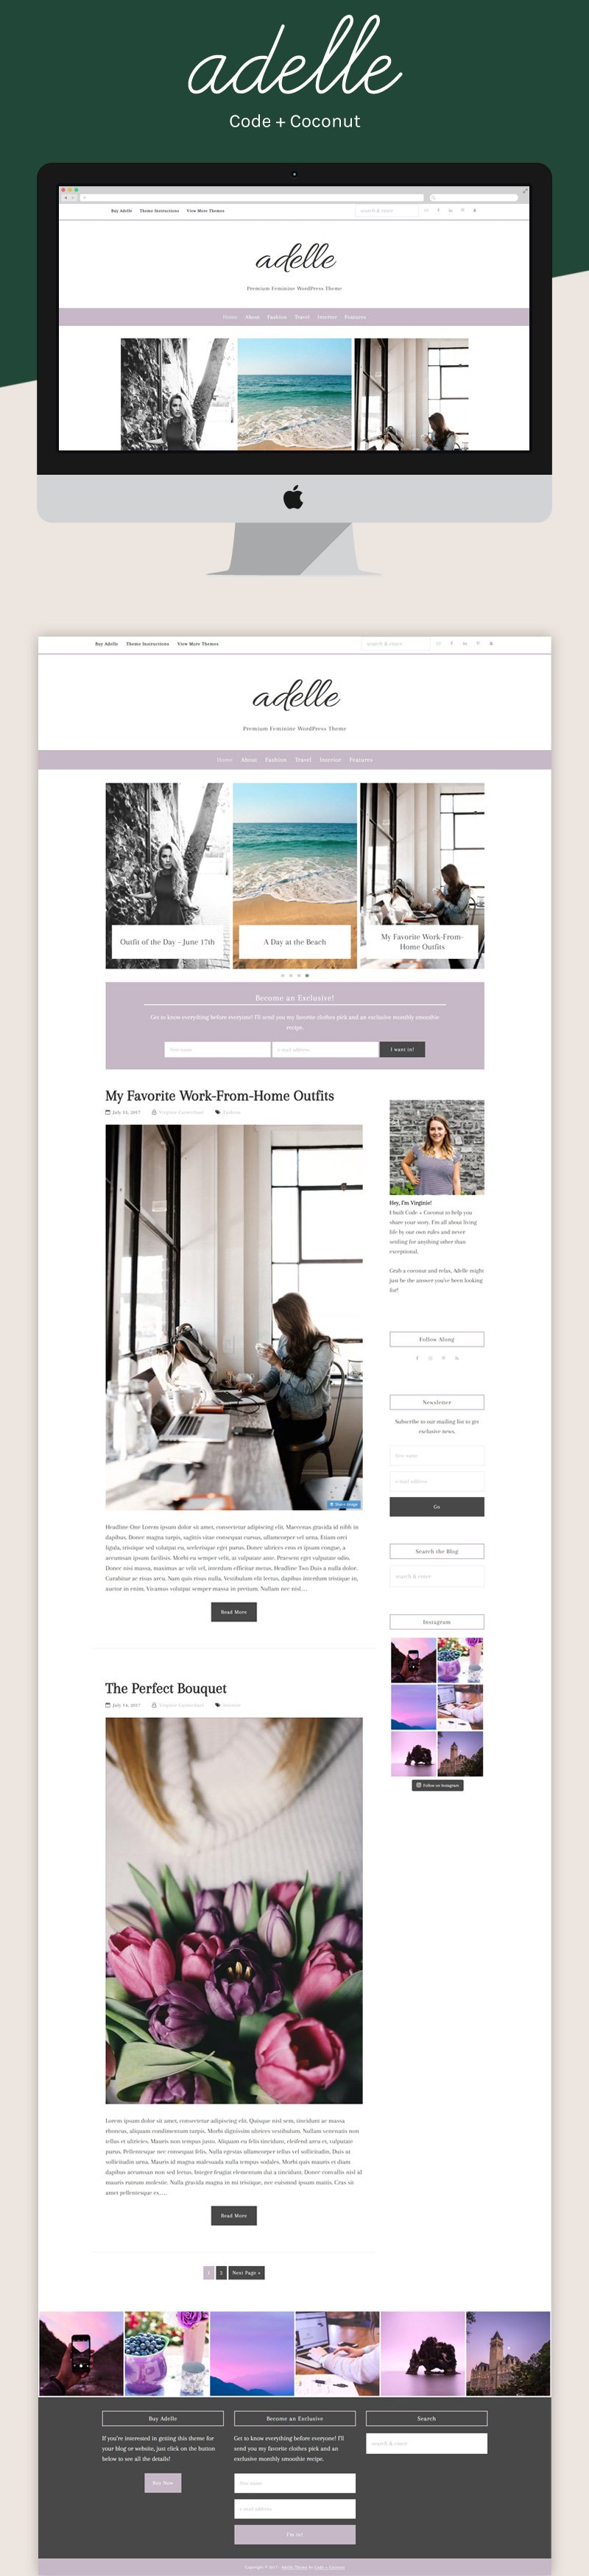 Looking for a great premium WordPress theme? Adelle is a theme for all bloggers. It's also customizable, so you can be sure it's going to fit you like a glove.